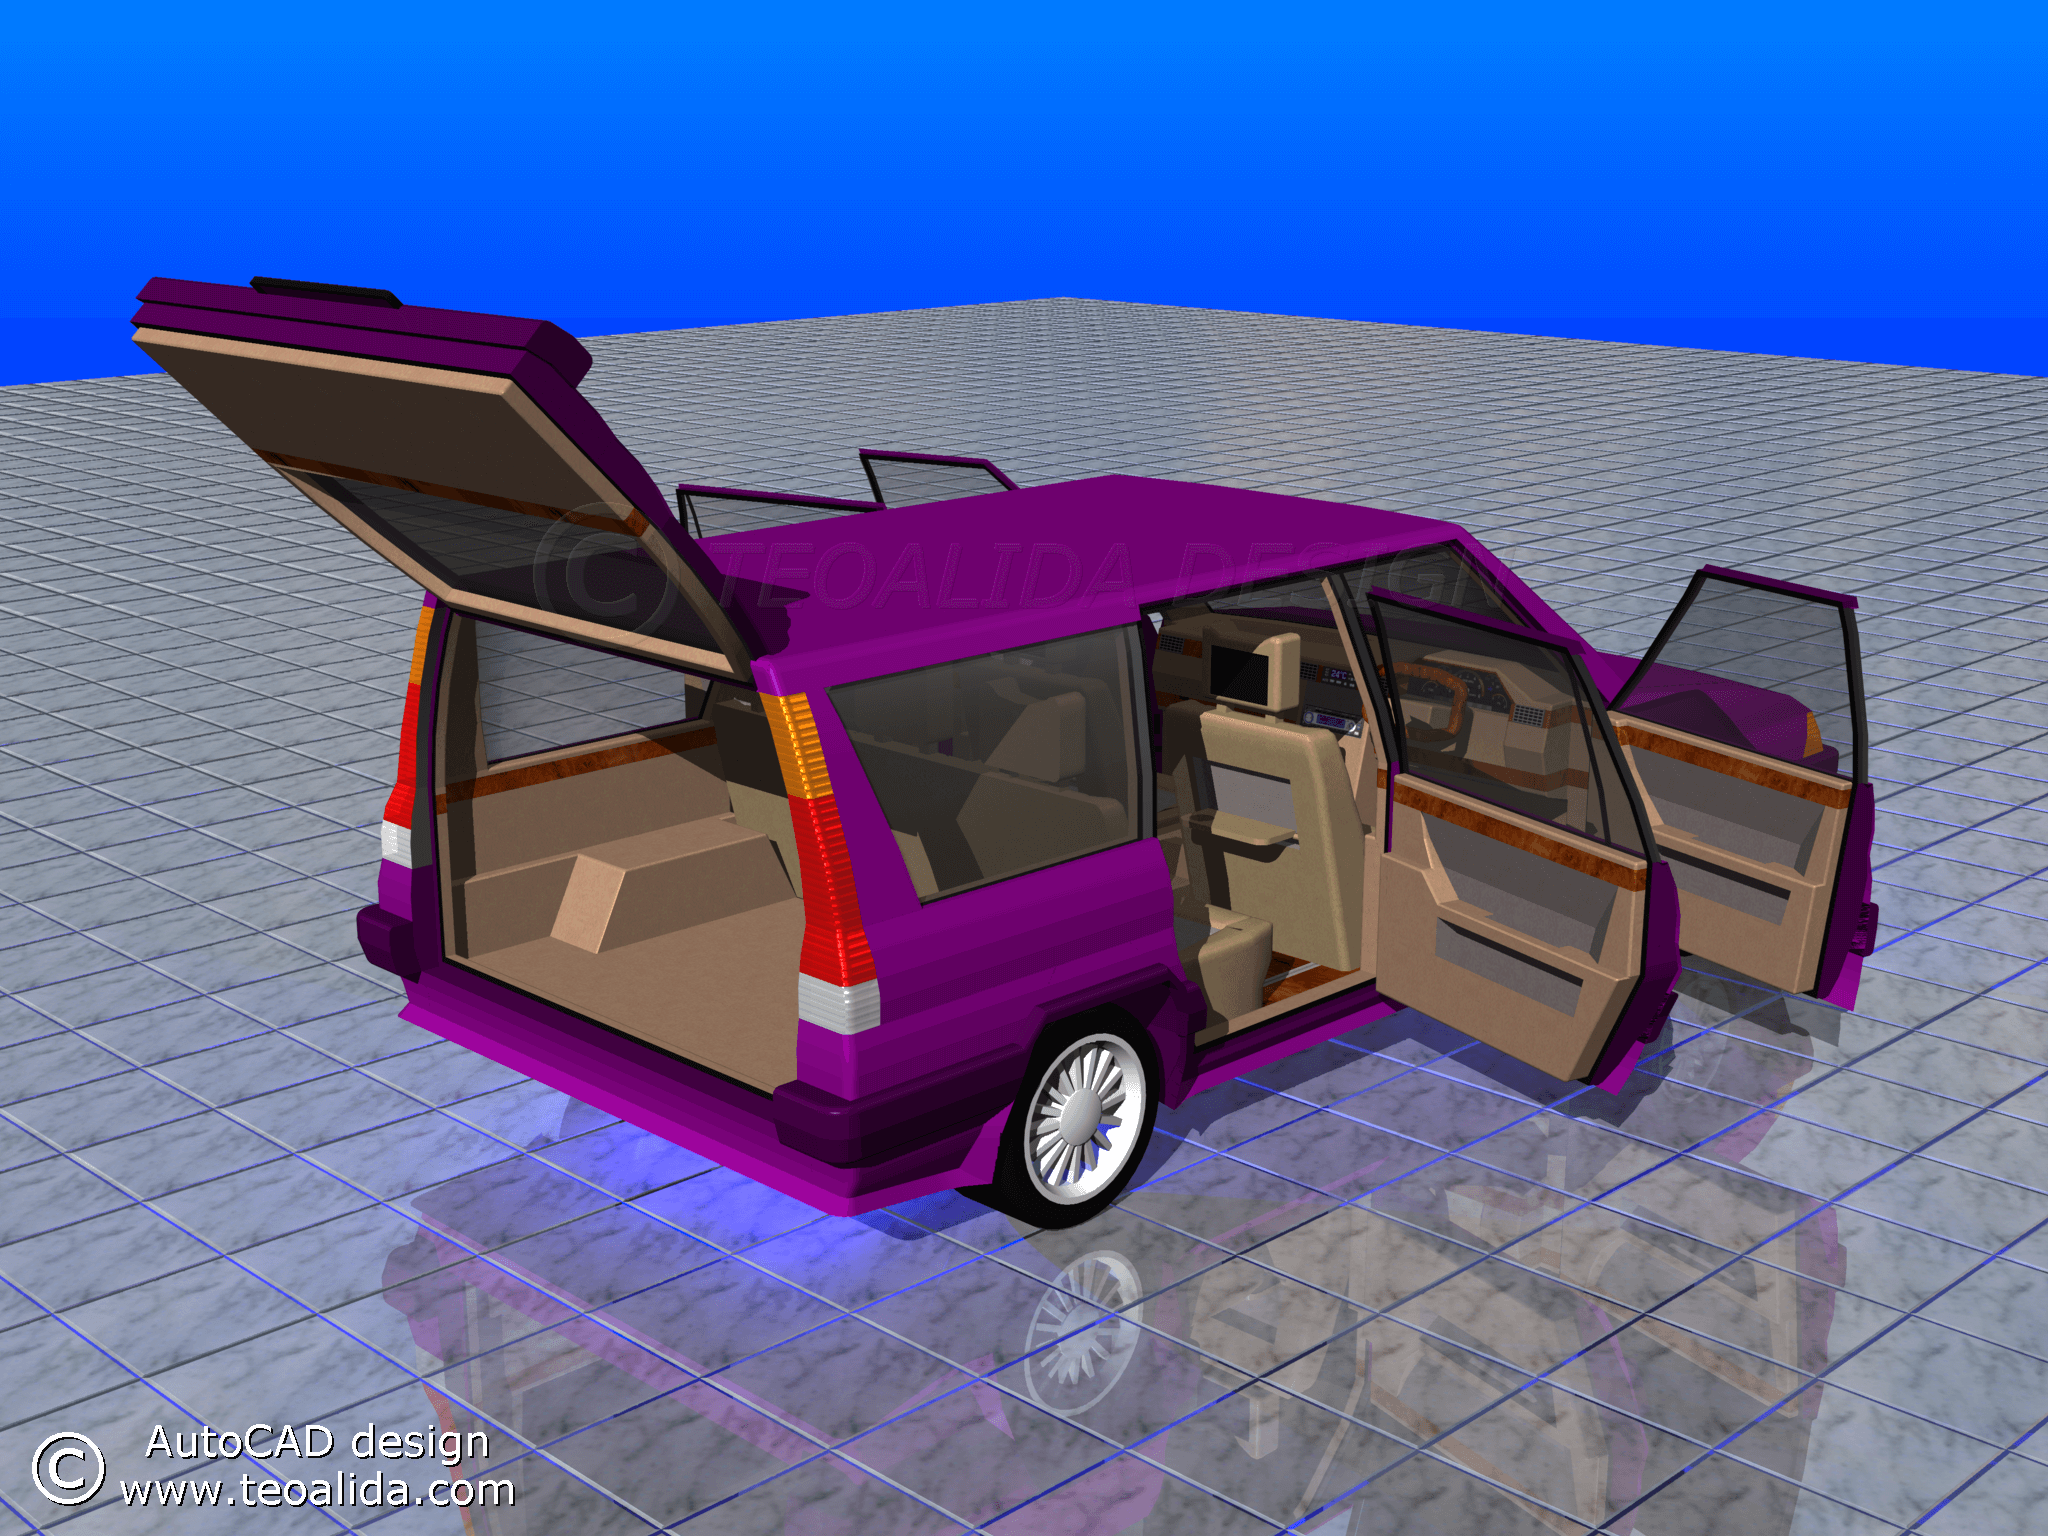 AutoCAD 3D Car Design - Teoalida's website